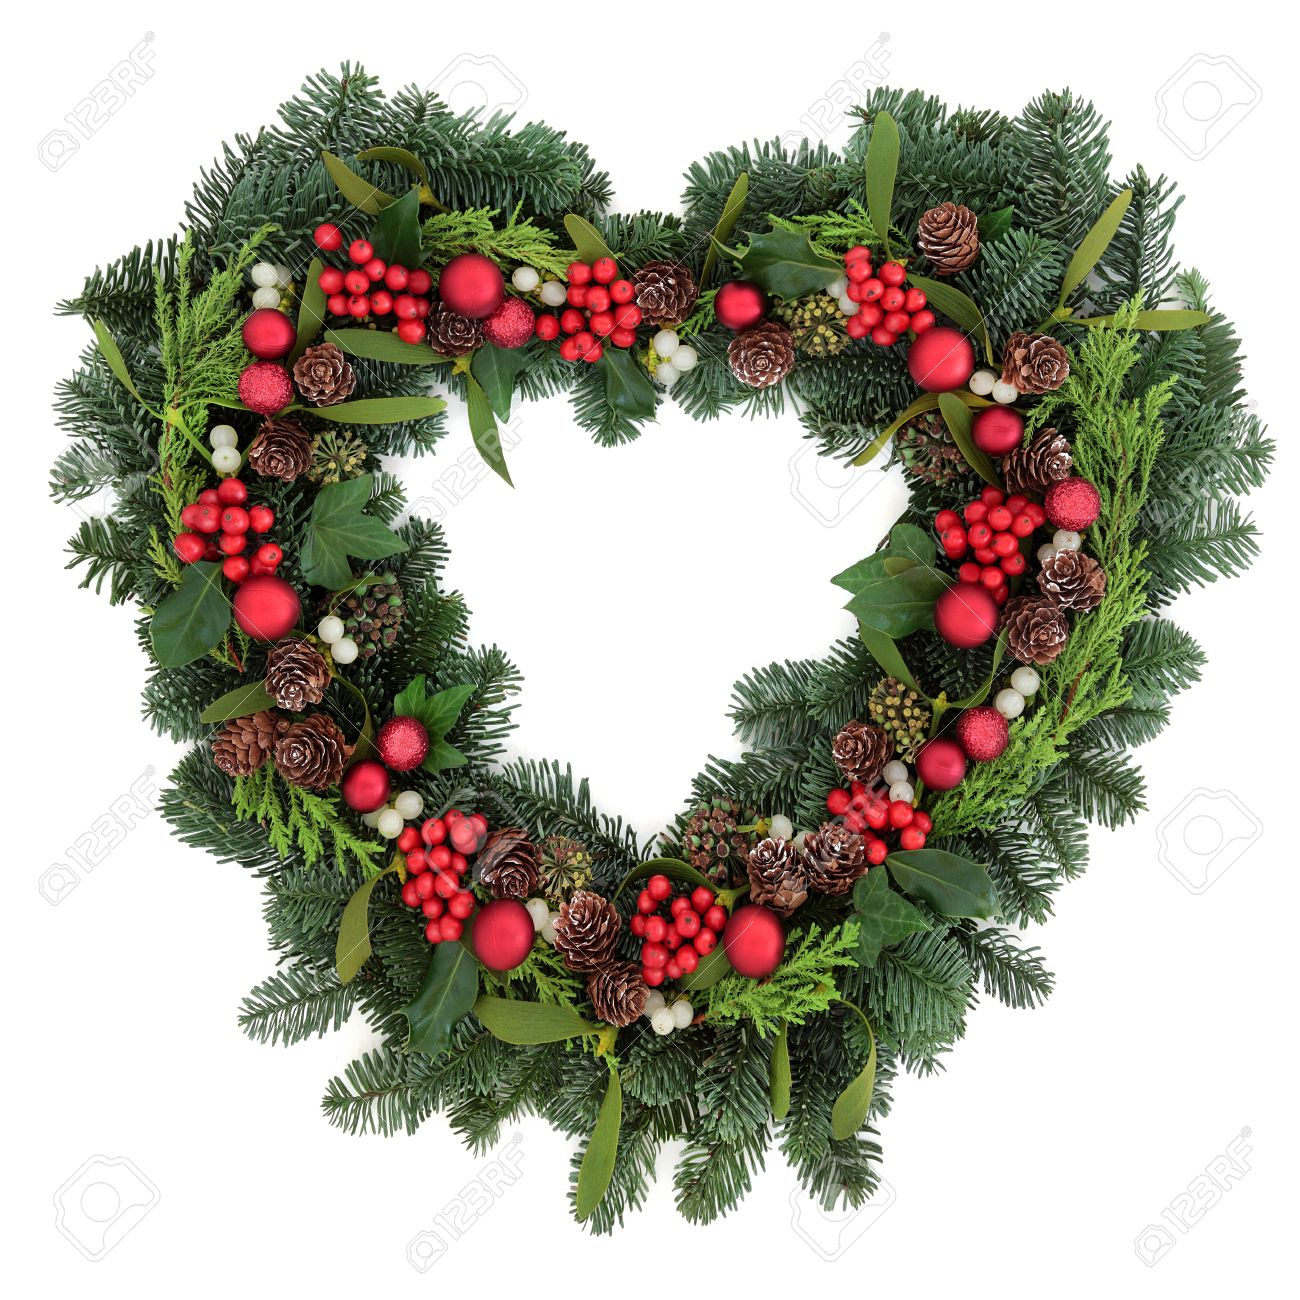 Christmas Heart Wreath.Heart Shaped Christmas Wreath With Red Bauble Decorations Holly